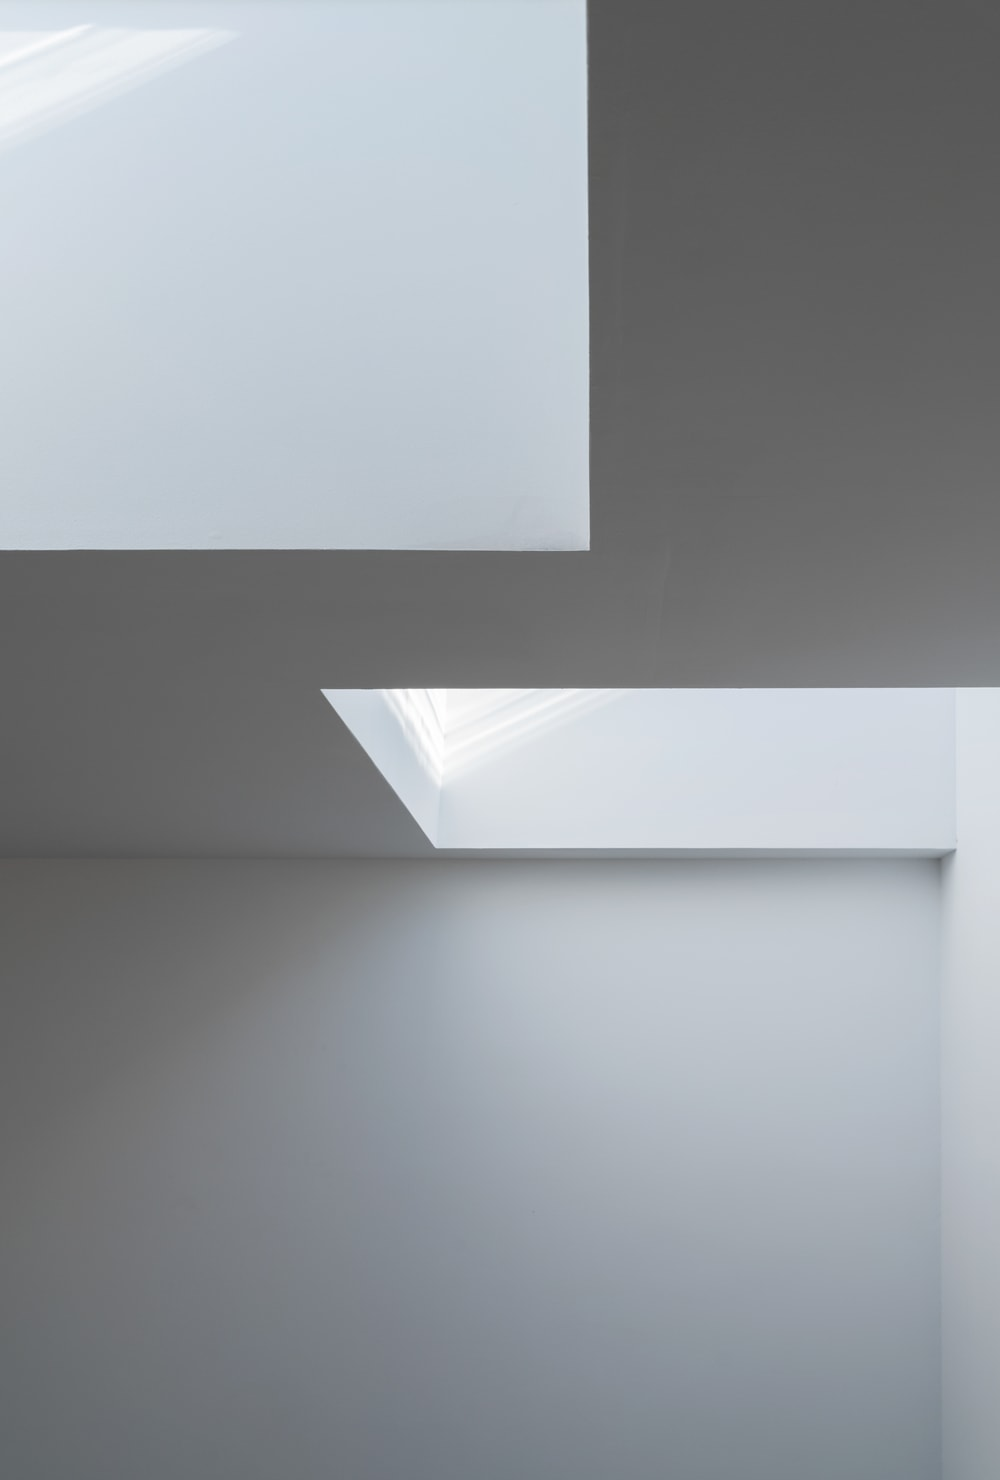 This angle of the two skylights appears as if a piece of modern art. This lovely design maximizes the amount of natural lighting the two skylights afford.